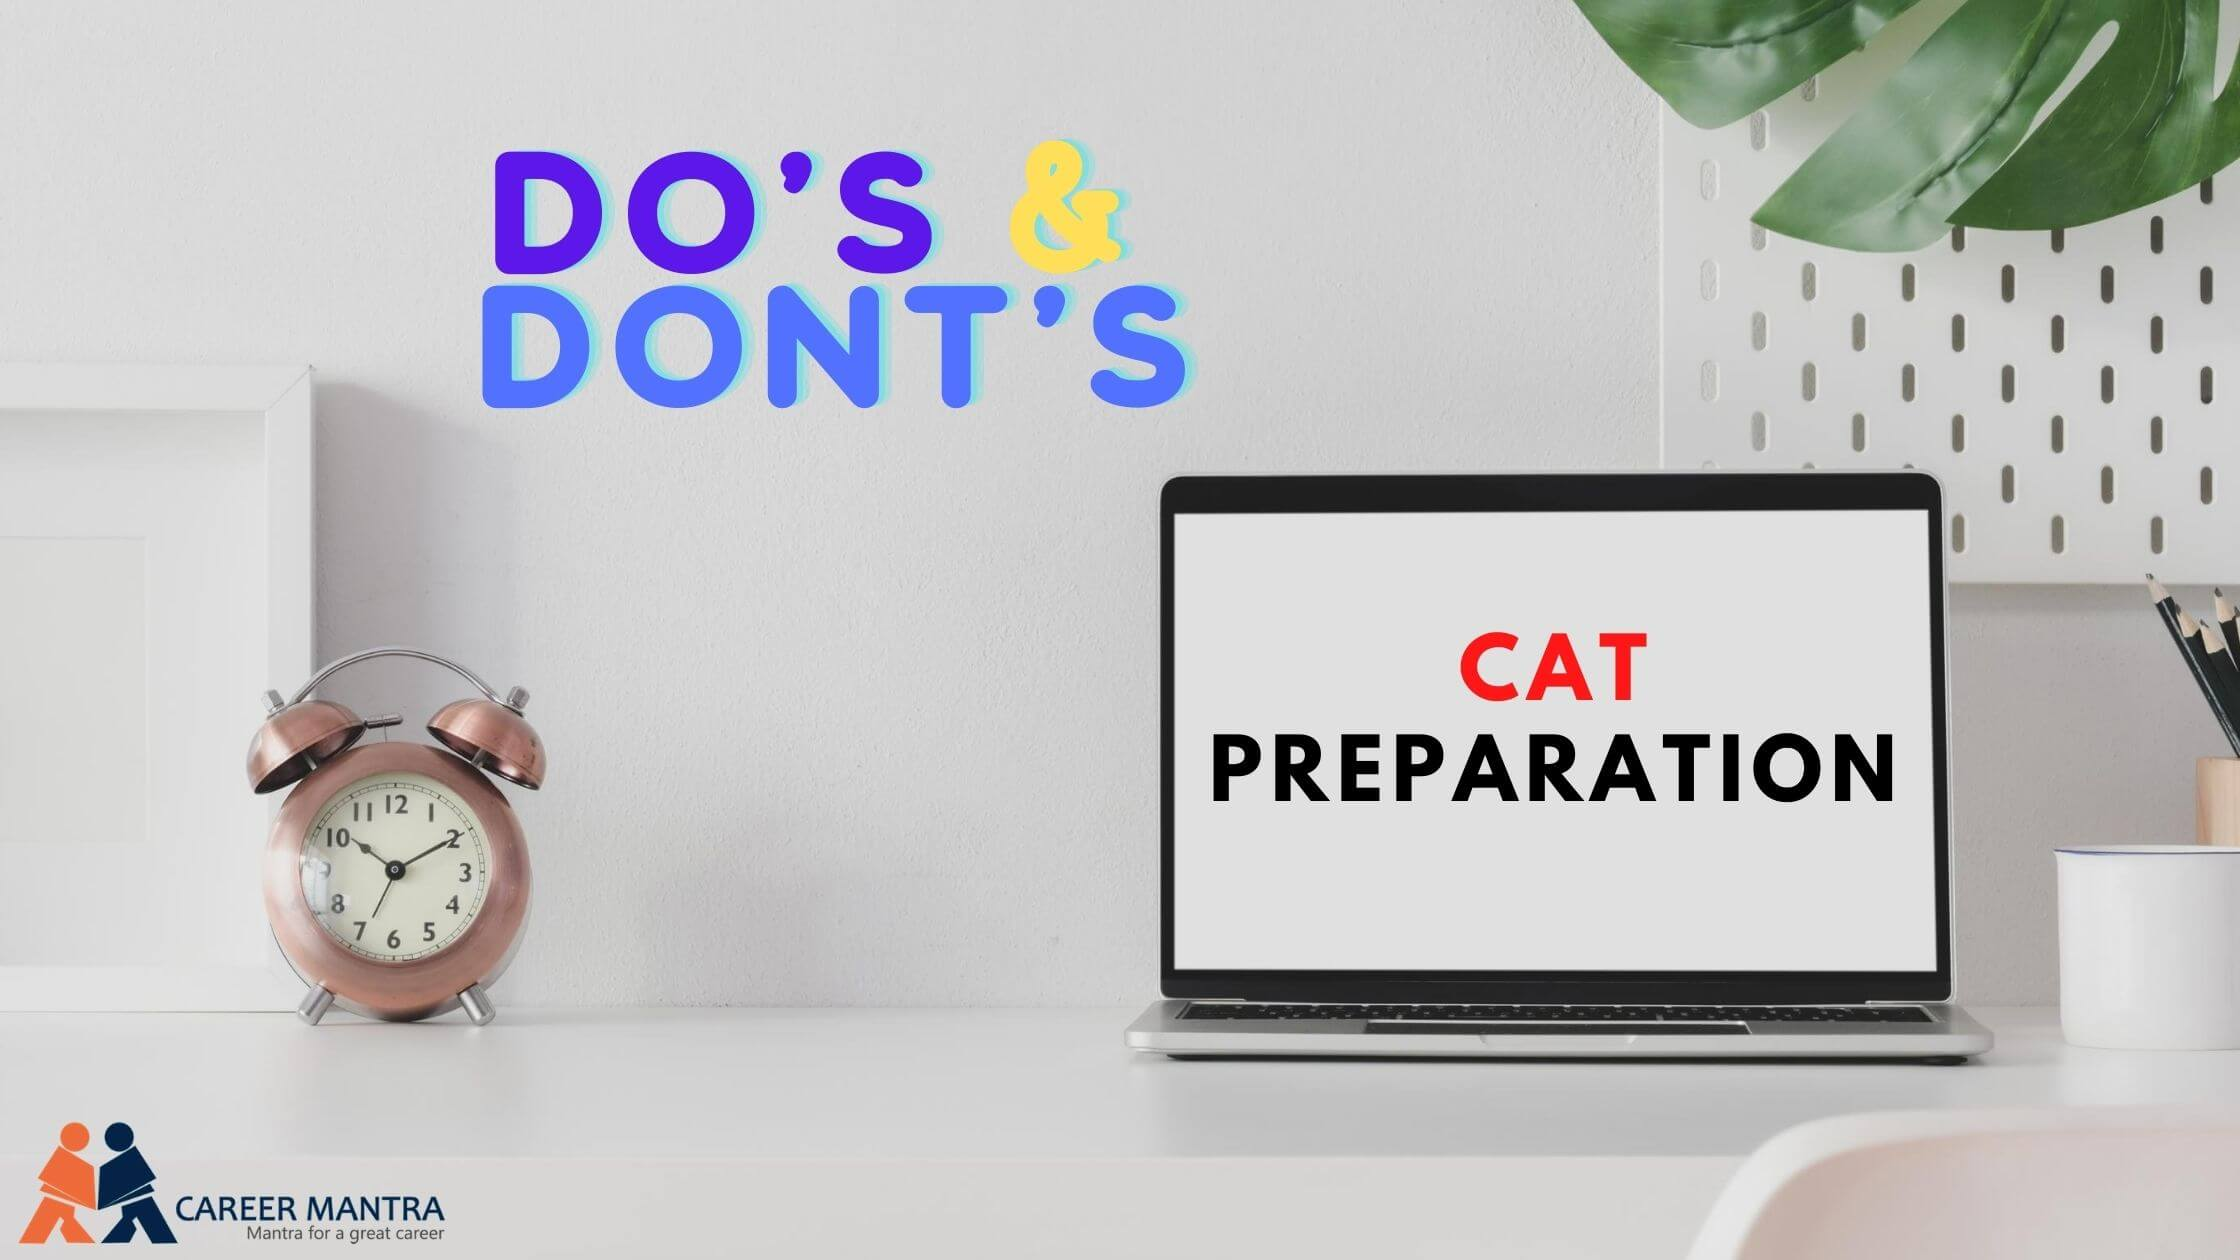 Do's & Don'ts   Best for CAT Preparation   2020